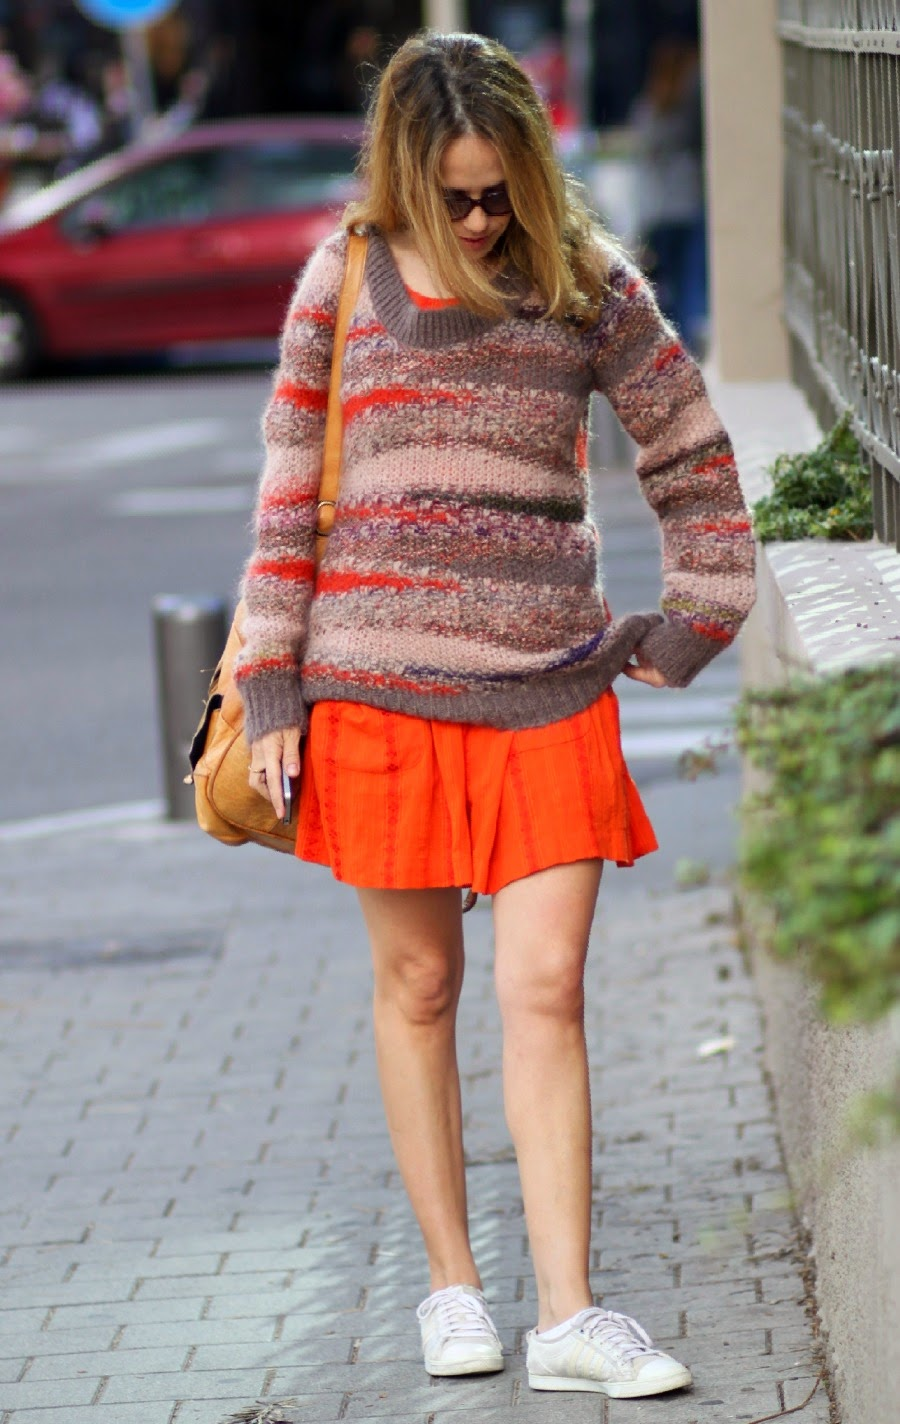 orange, dress, fashionchallenge,lookoftheday, layeringlook, spring2015,streetstyle,telavivfashion,fashionblog,אופנה,בלוגאופנה, vanessabruno